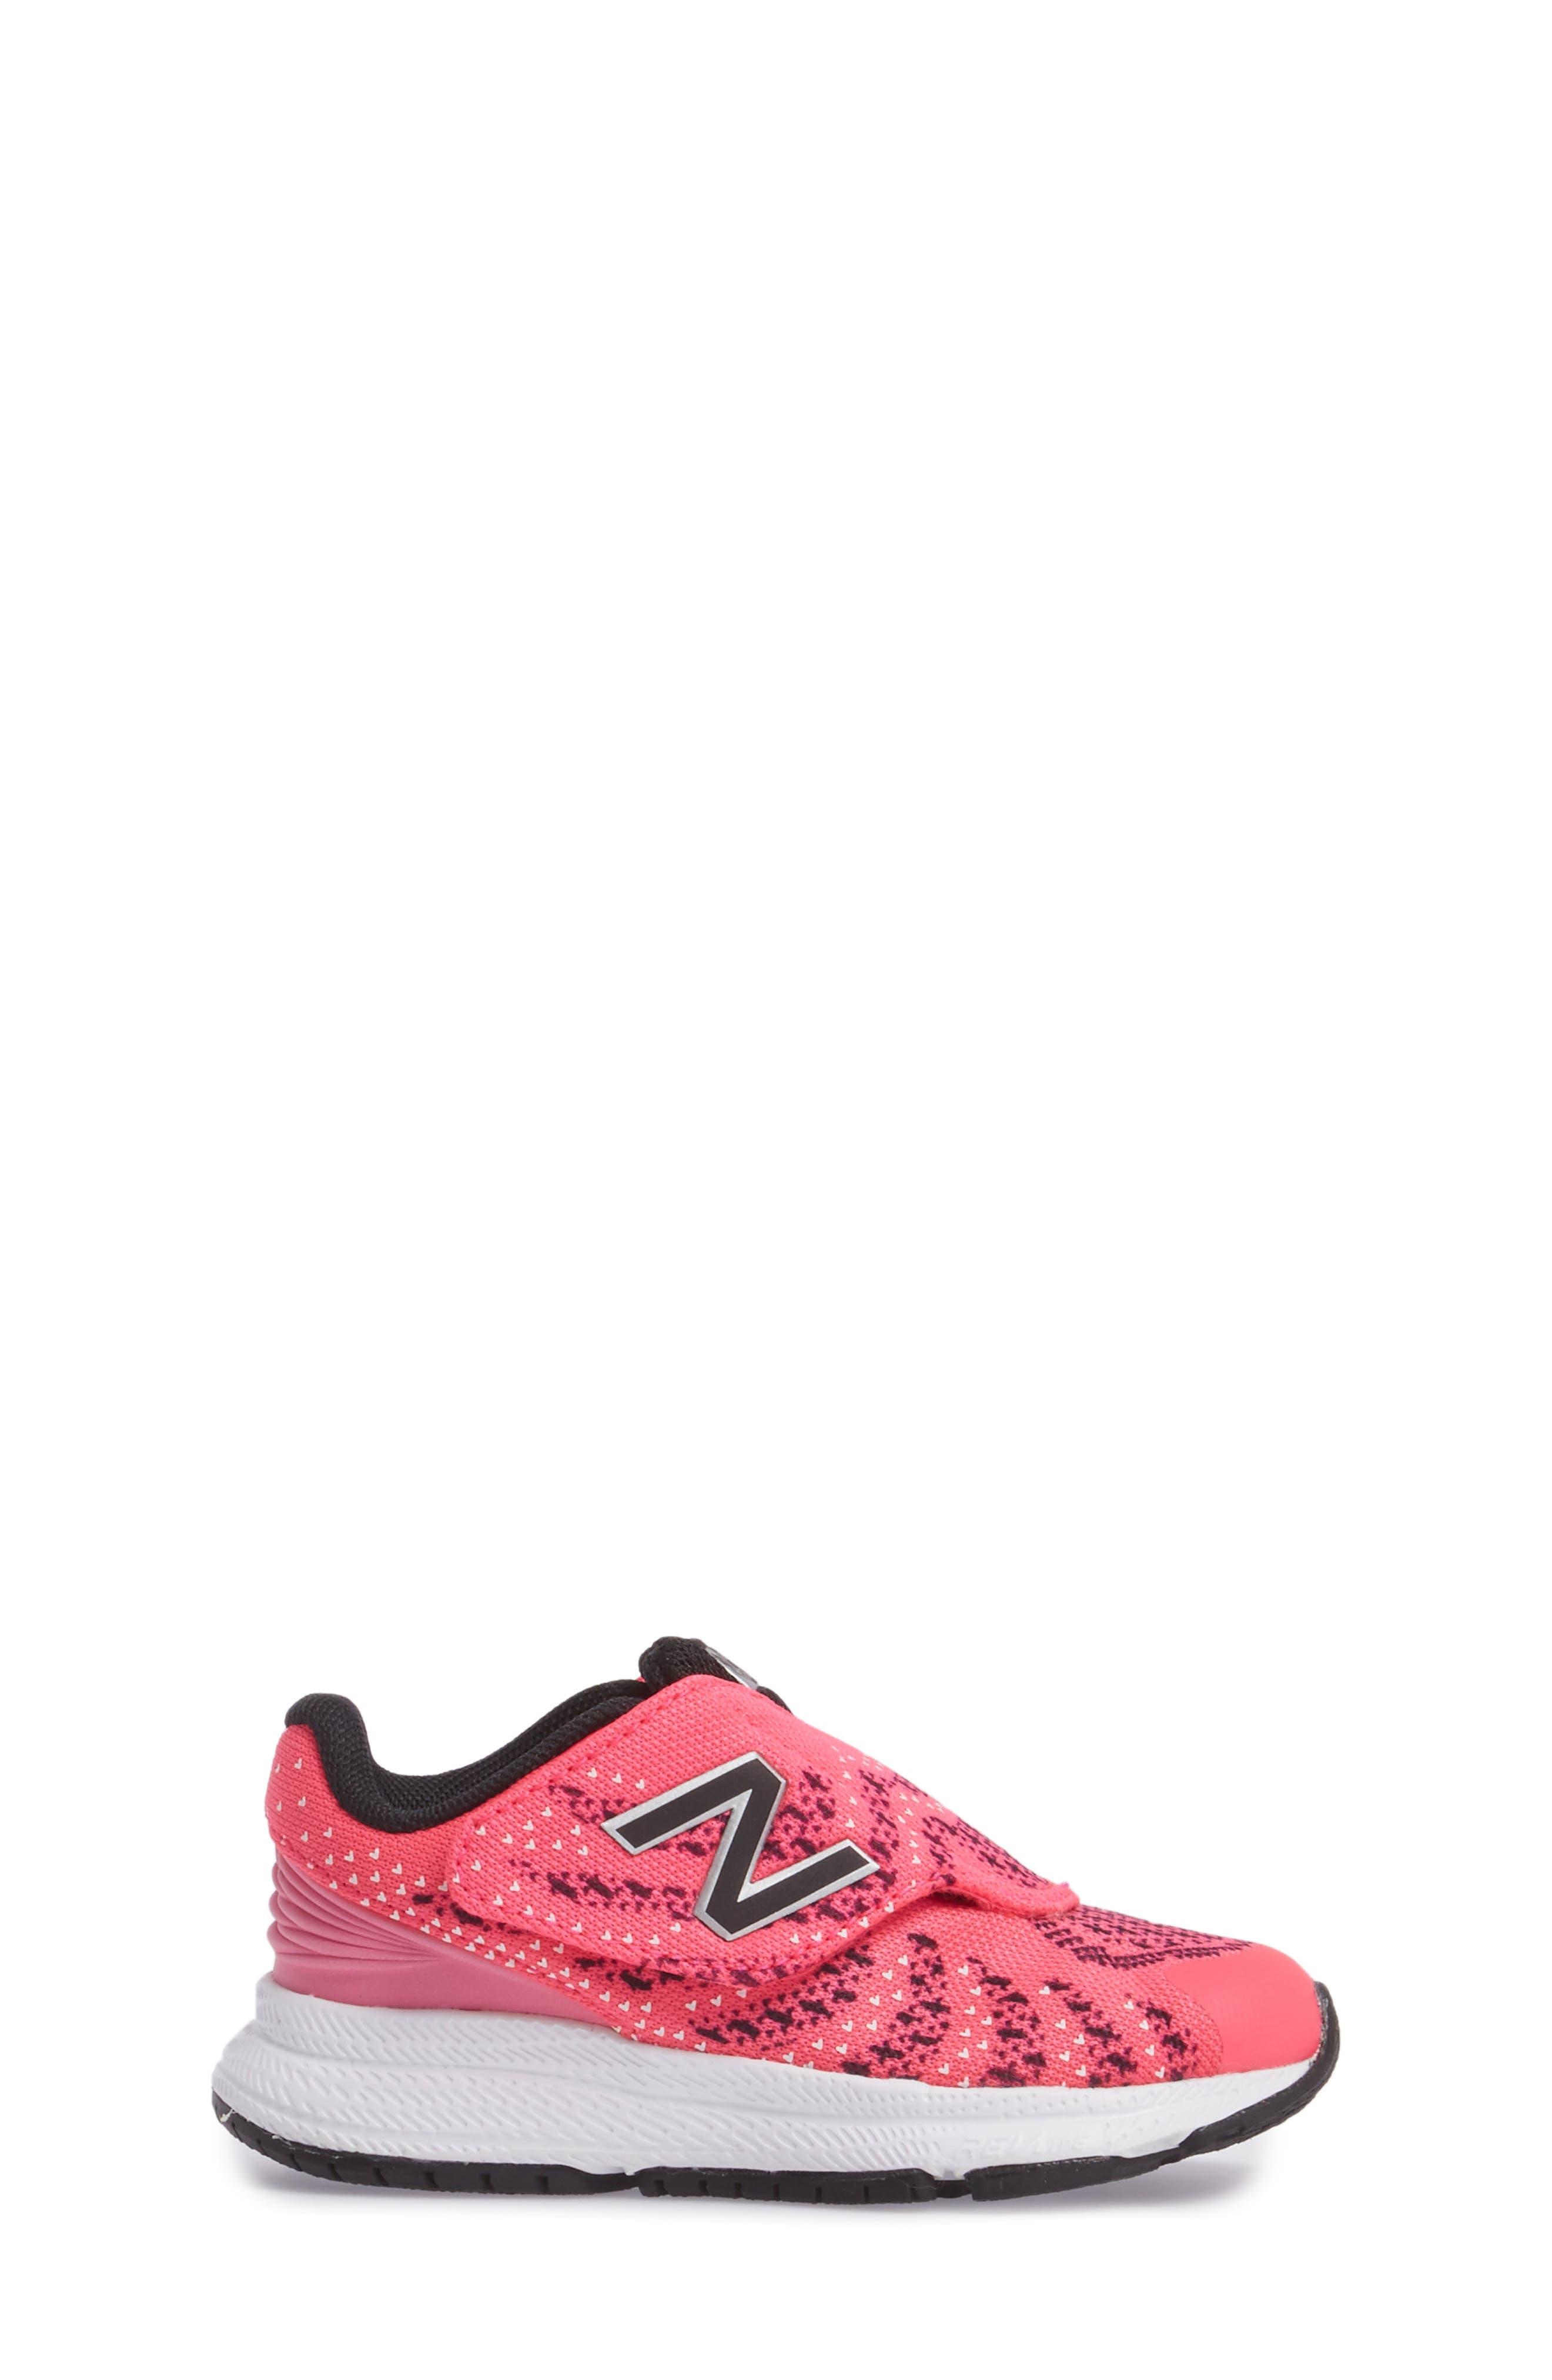 FuelCore Rush v3 Knit Sneaker,                             Alternate thumbnail 3, color,                             Pink